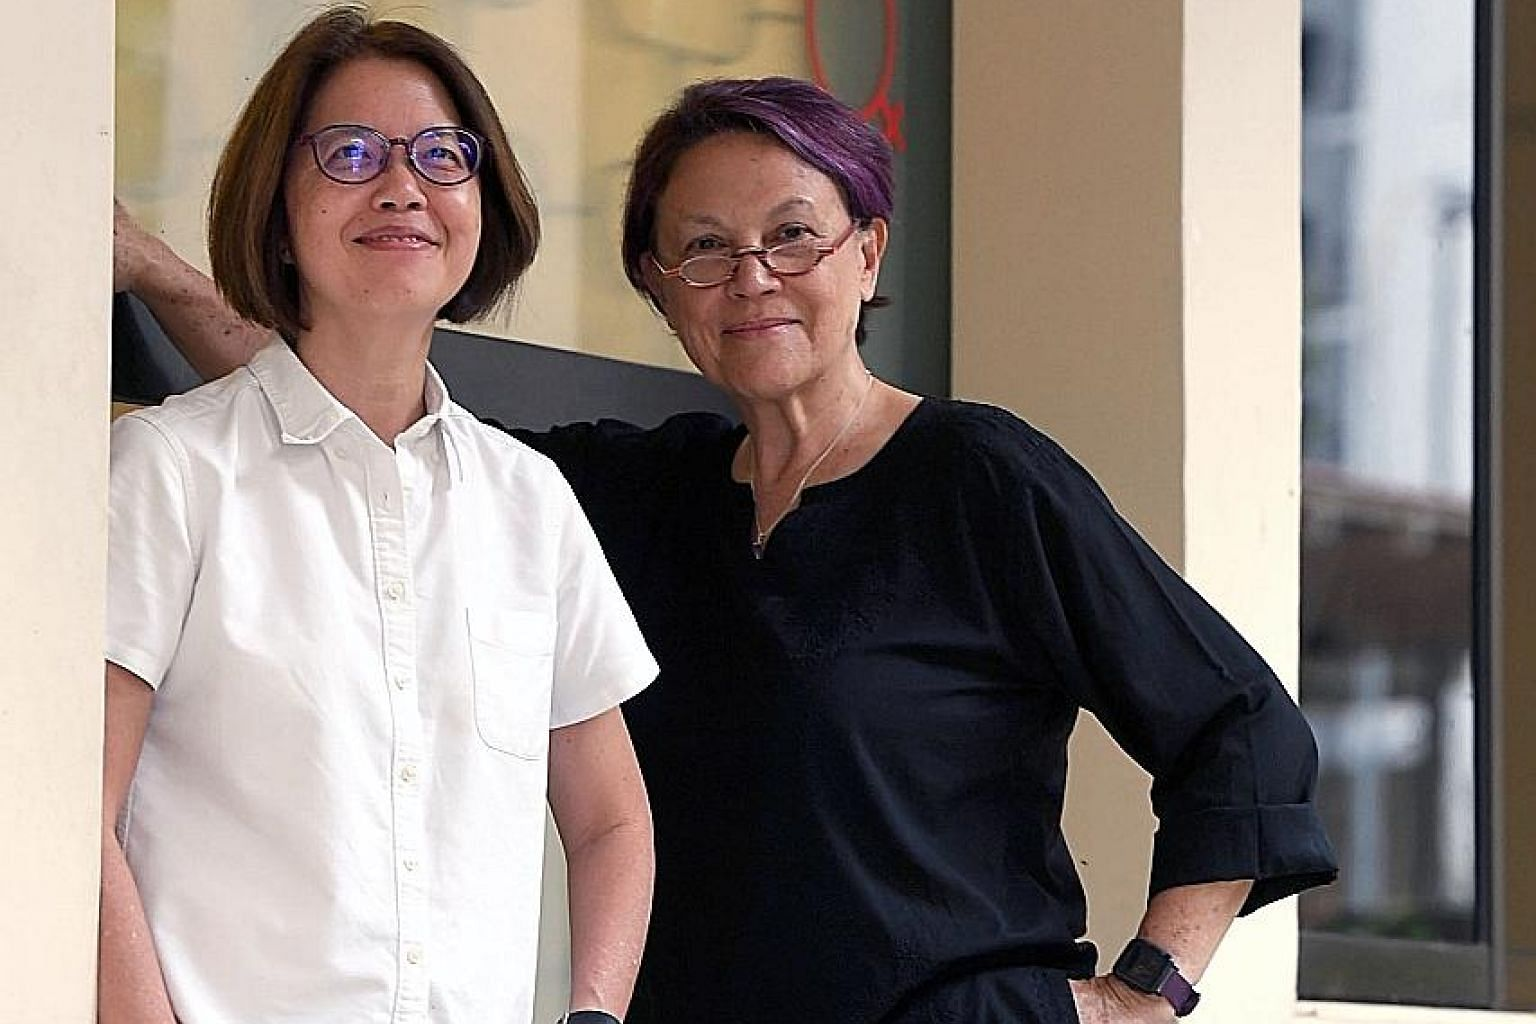 The extraordinary general meeting held in May 2009 at Suntec City, where two-thirds of about 2,000 Aware members voted for a no-confidence motion on the new leadership spearheaded by Ms Josie Lau. It was the dramatic culmination of a clash between a